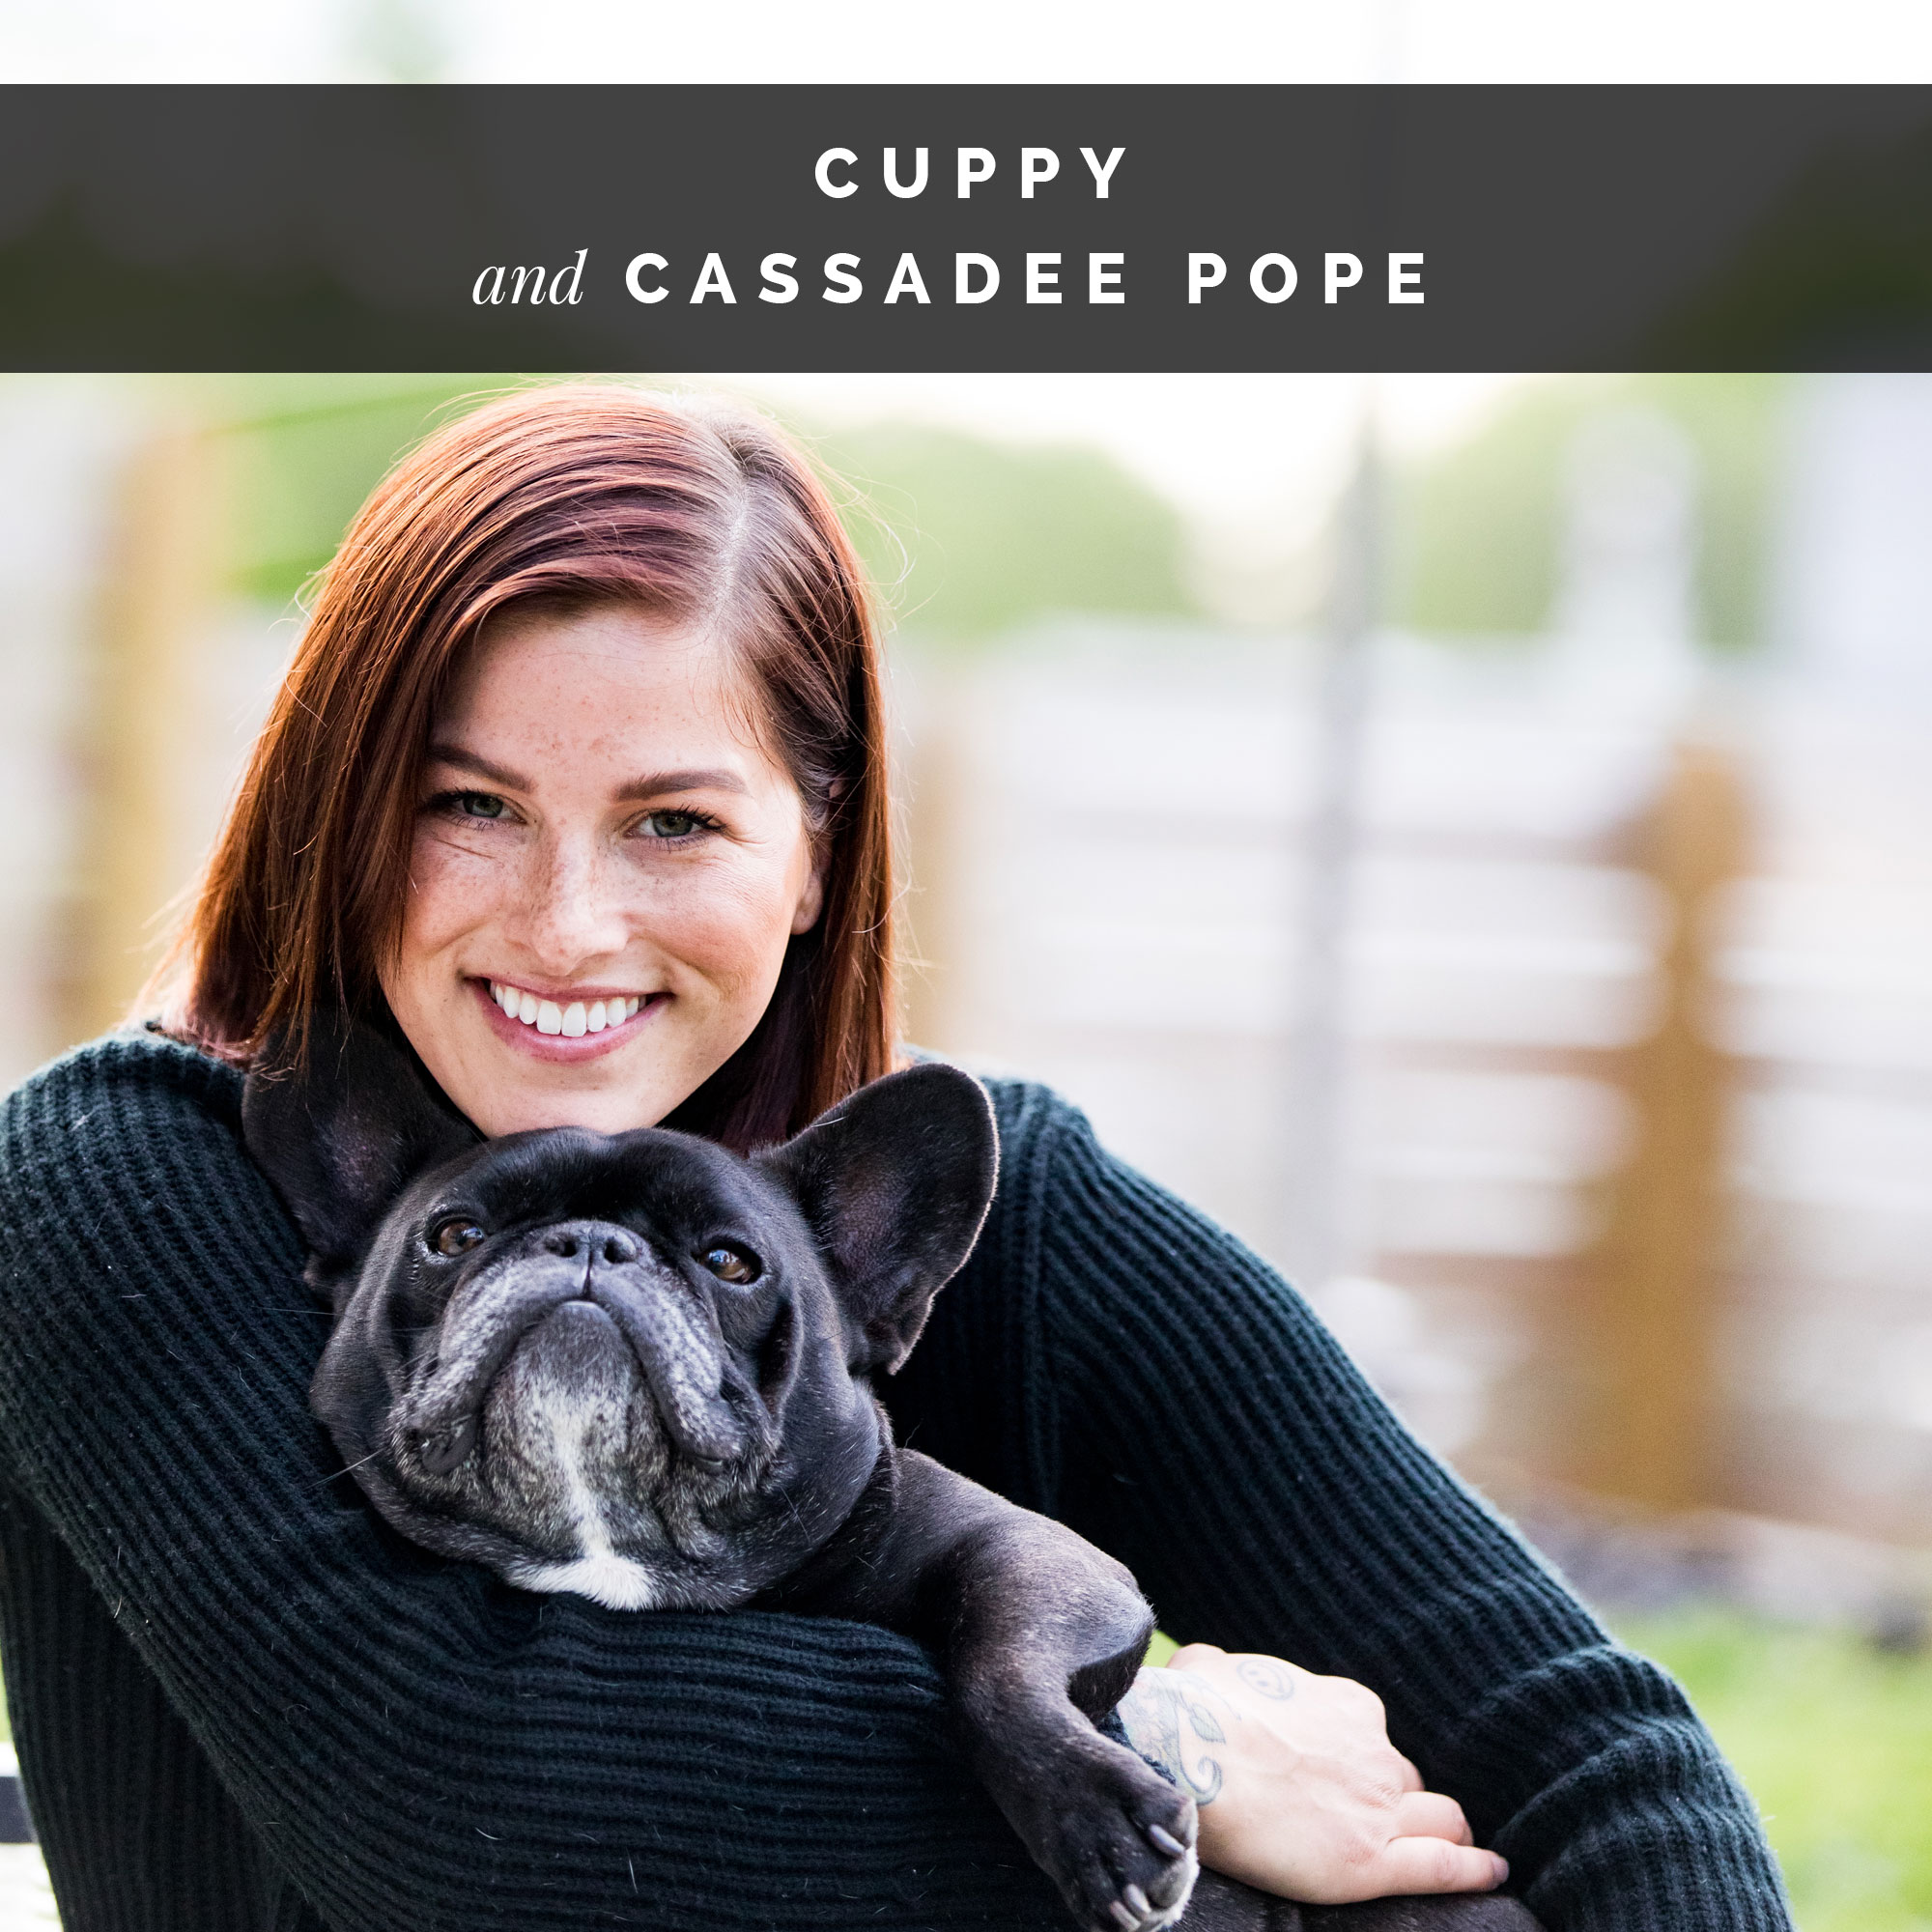 cassadee pope and her dog, cuppy